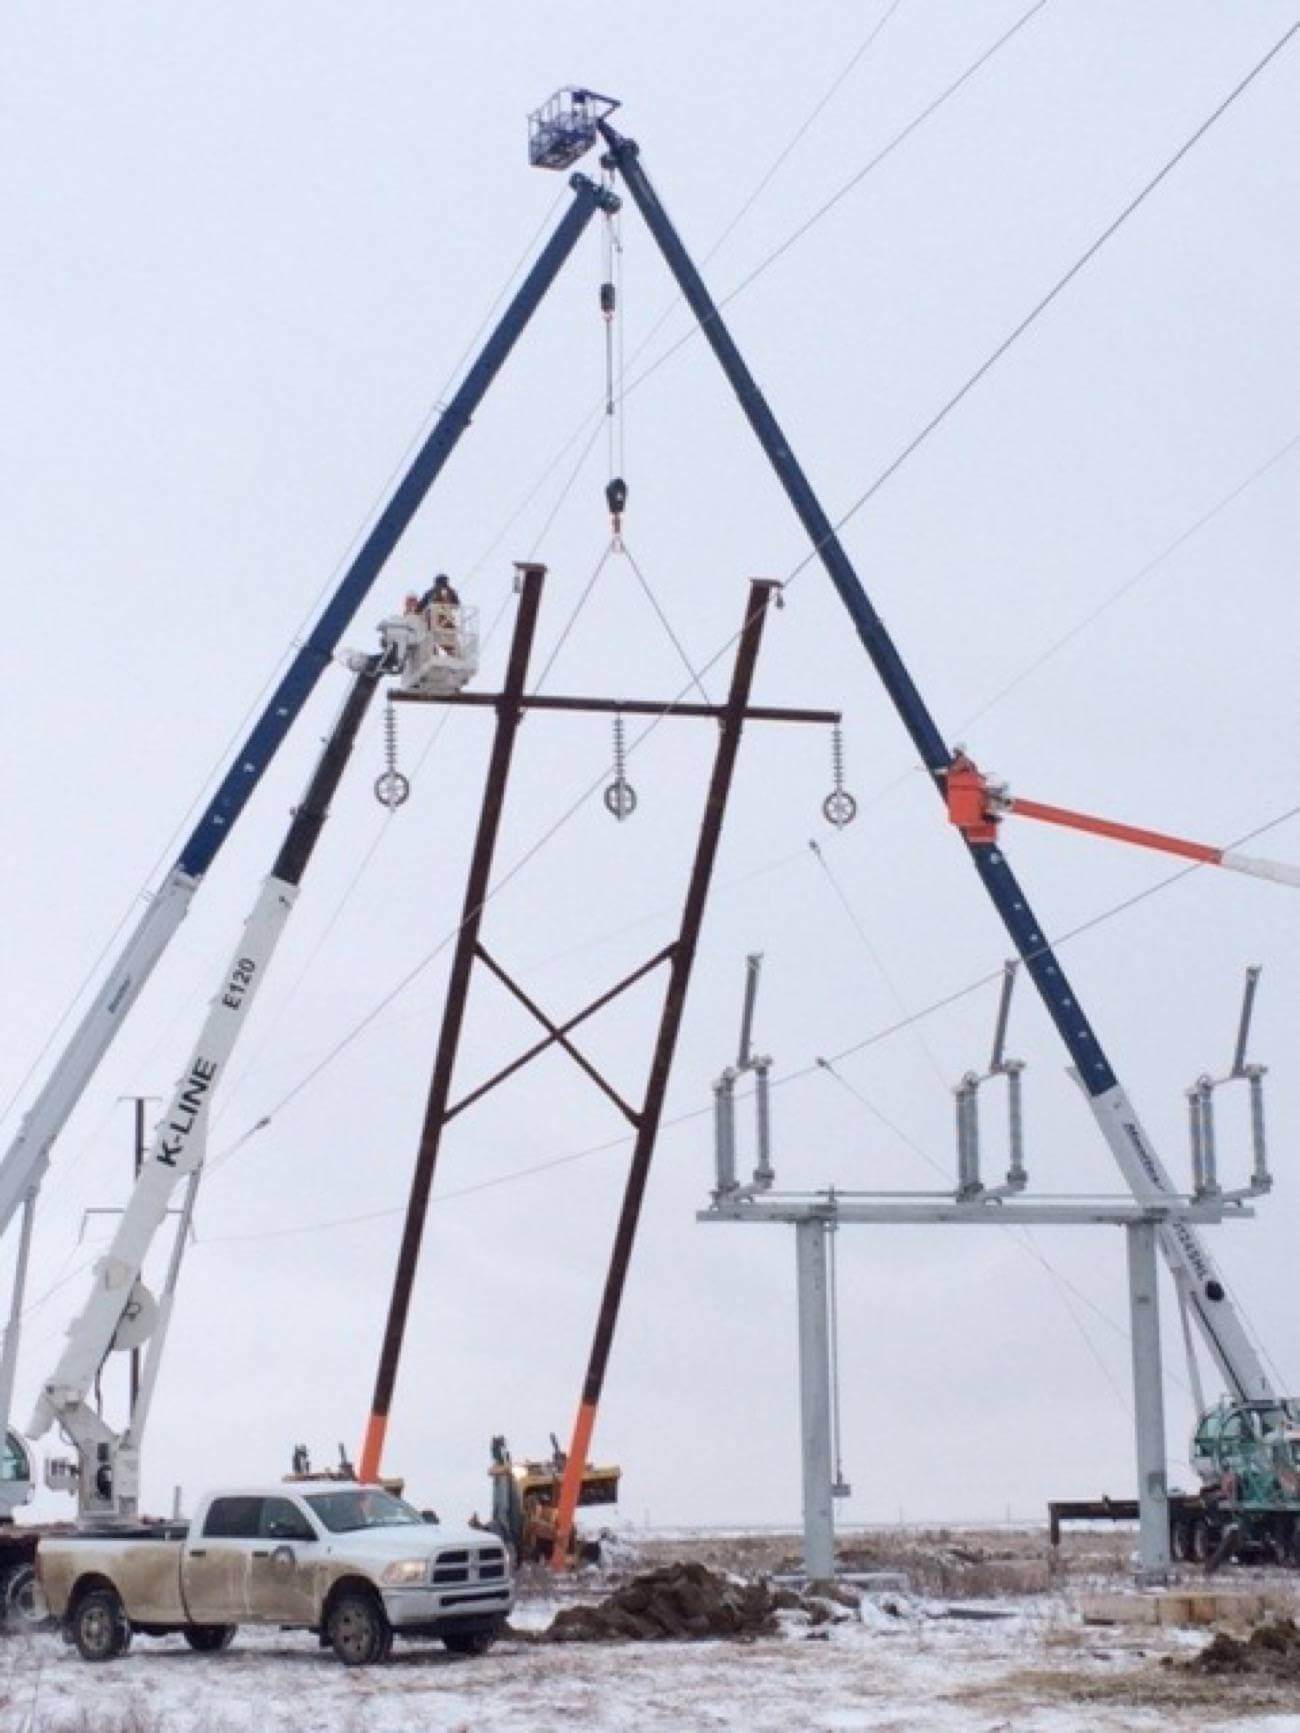 Erecting a transmission tower with cranes